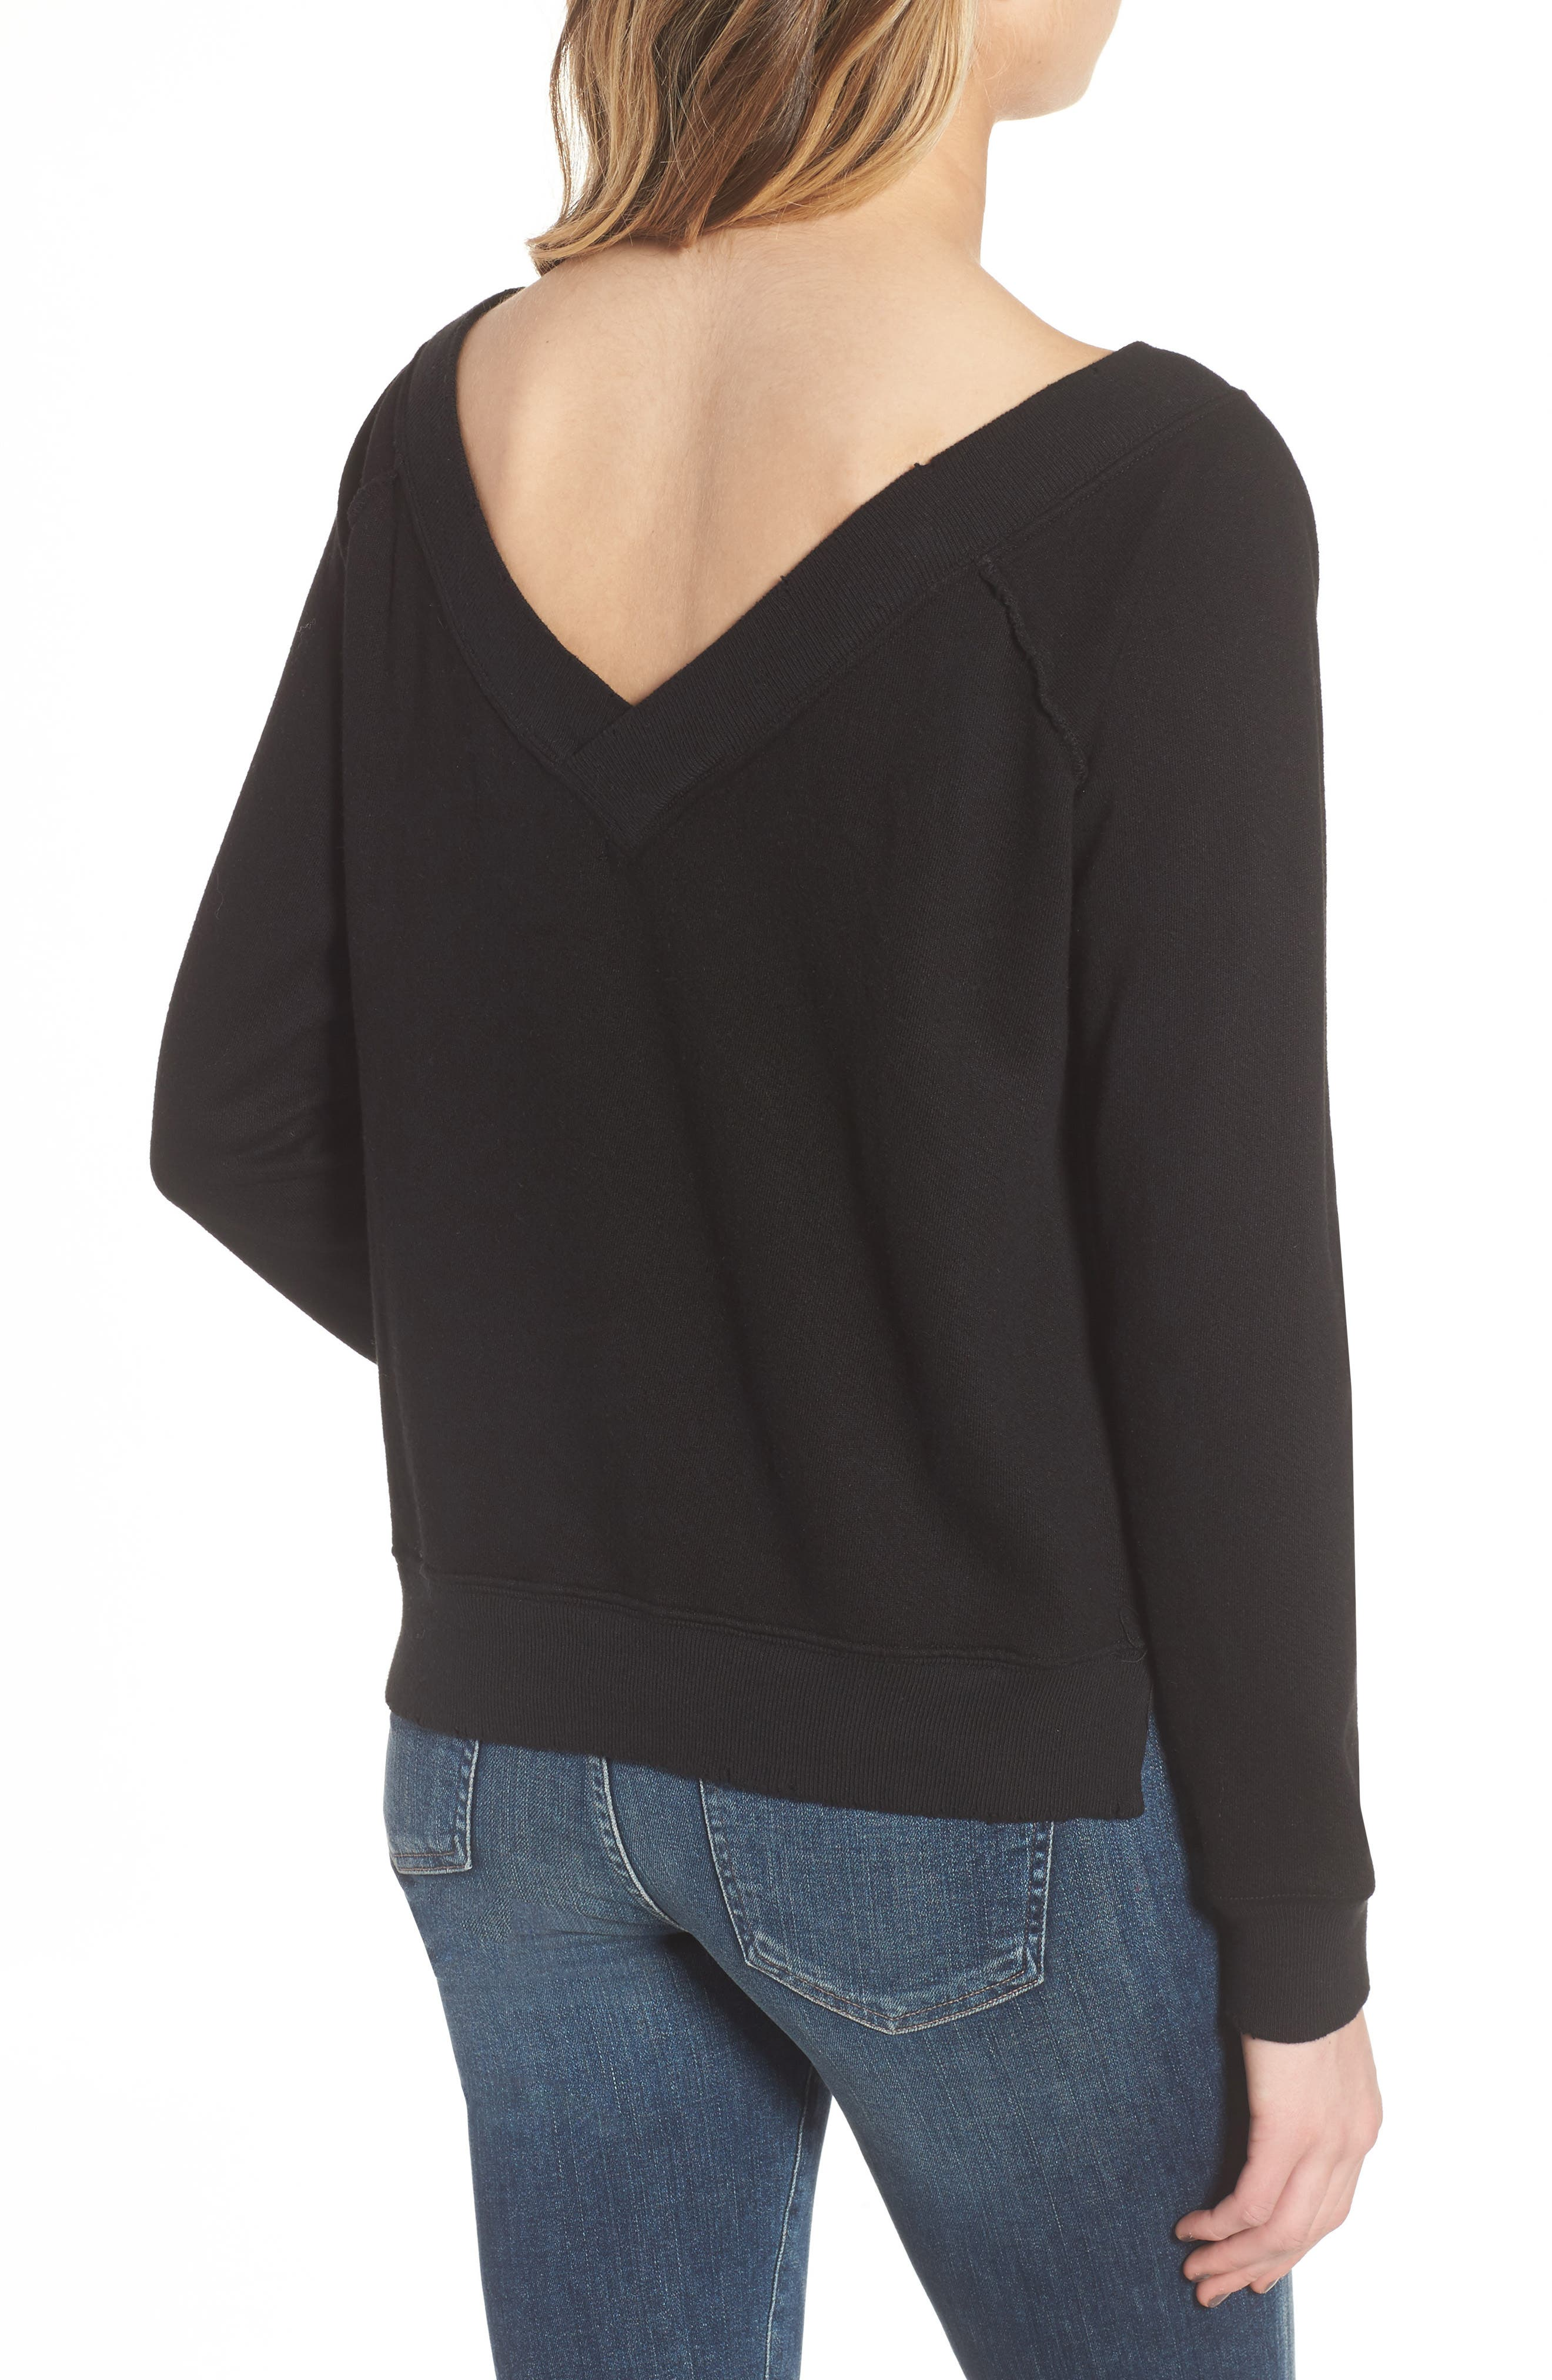 Mayer V-Neck Sweatshirt,                             Alternate thumbnail 2, color,                             Black Cat